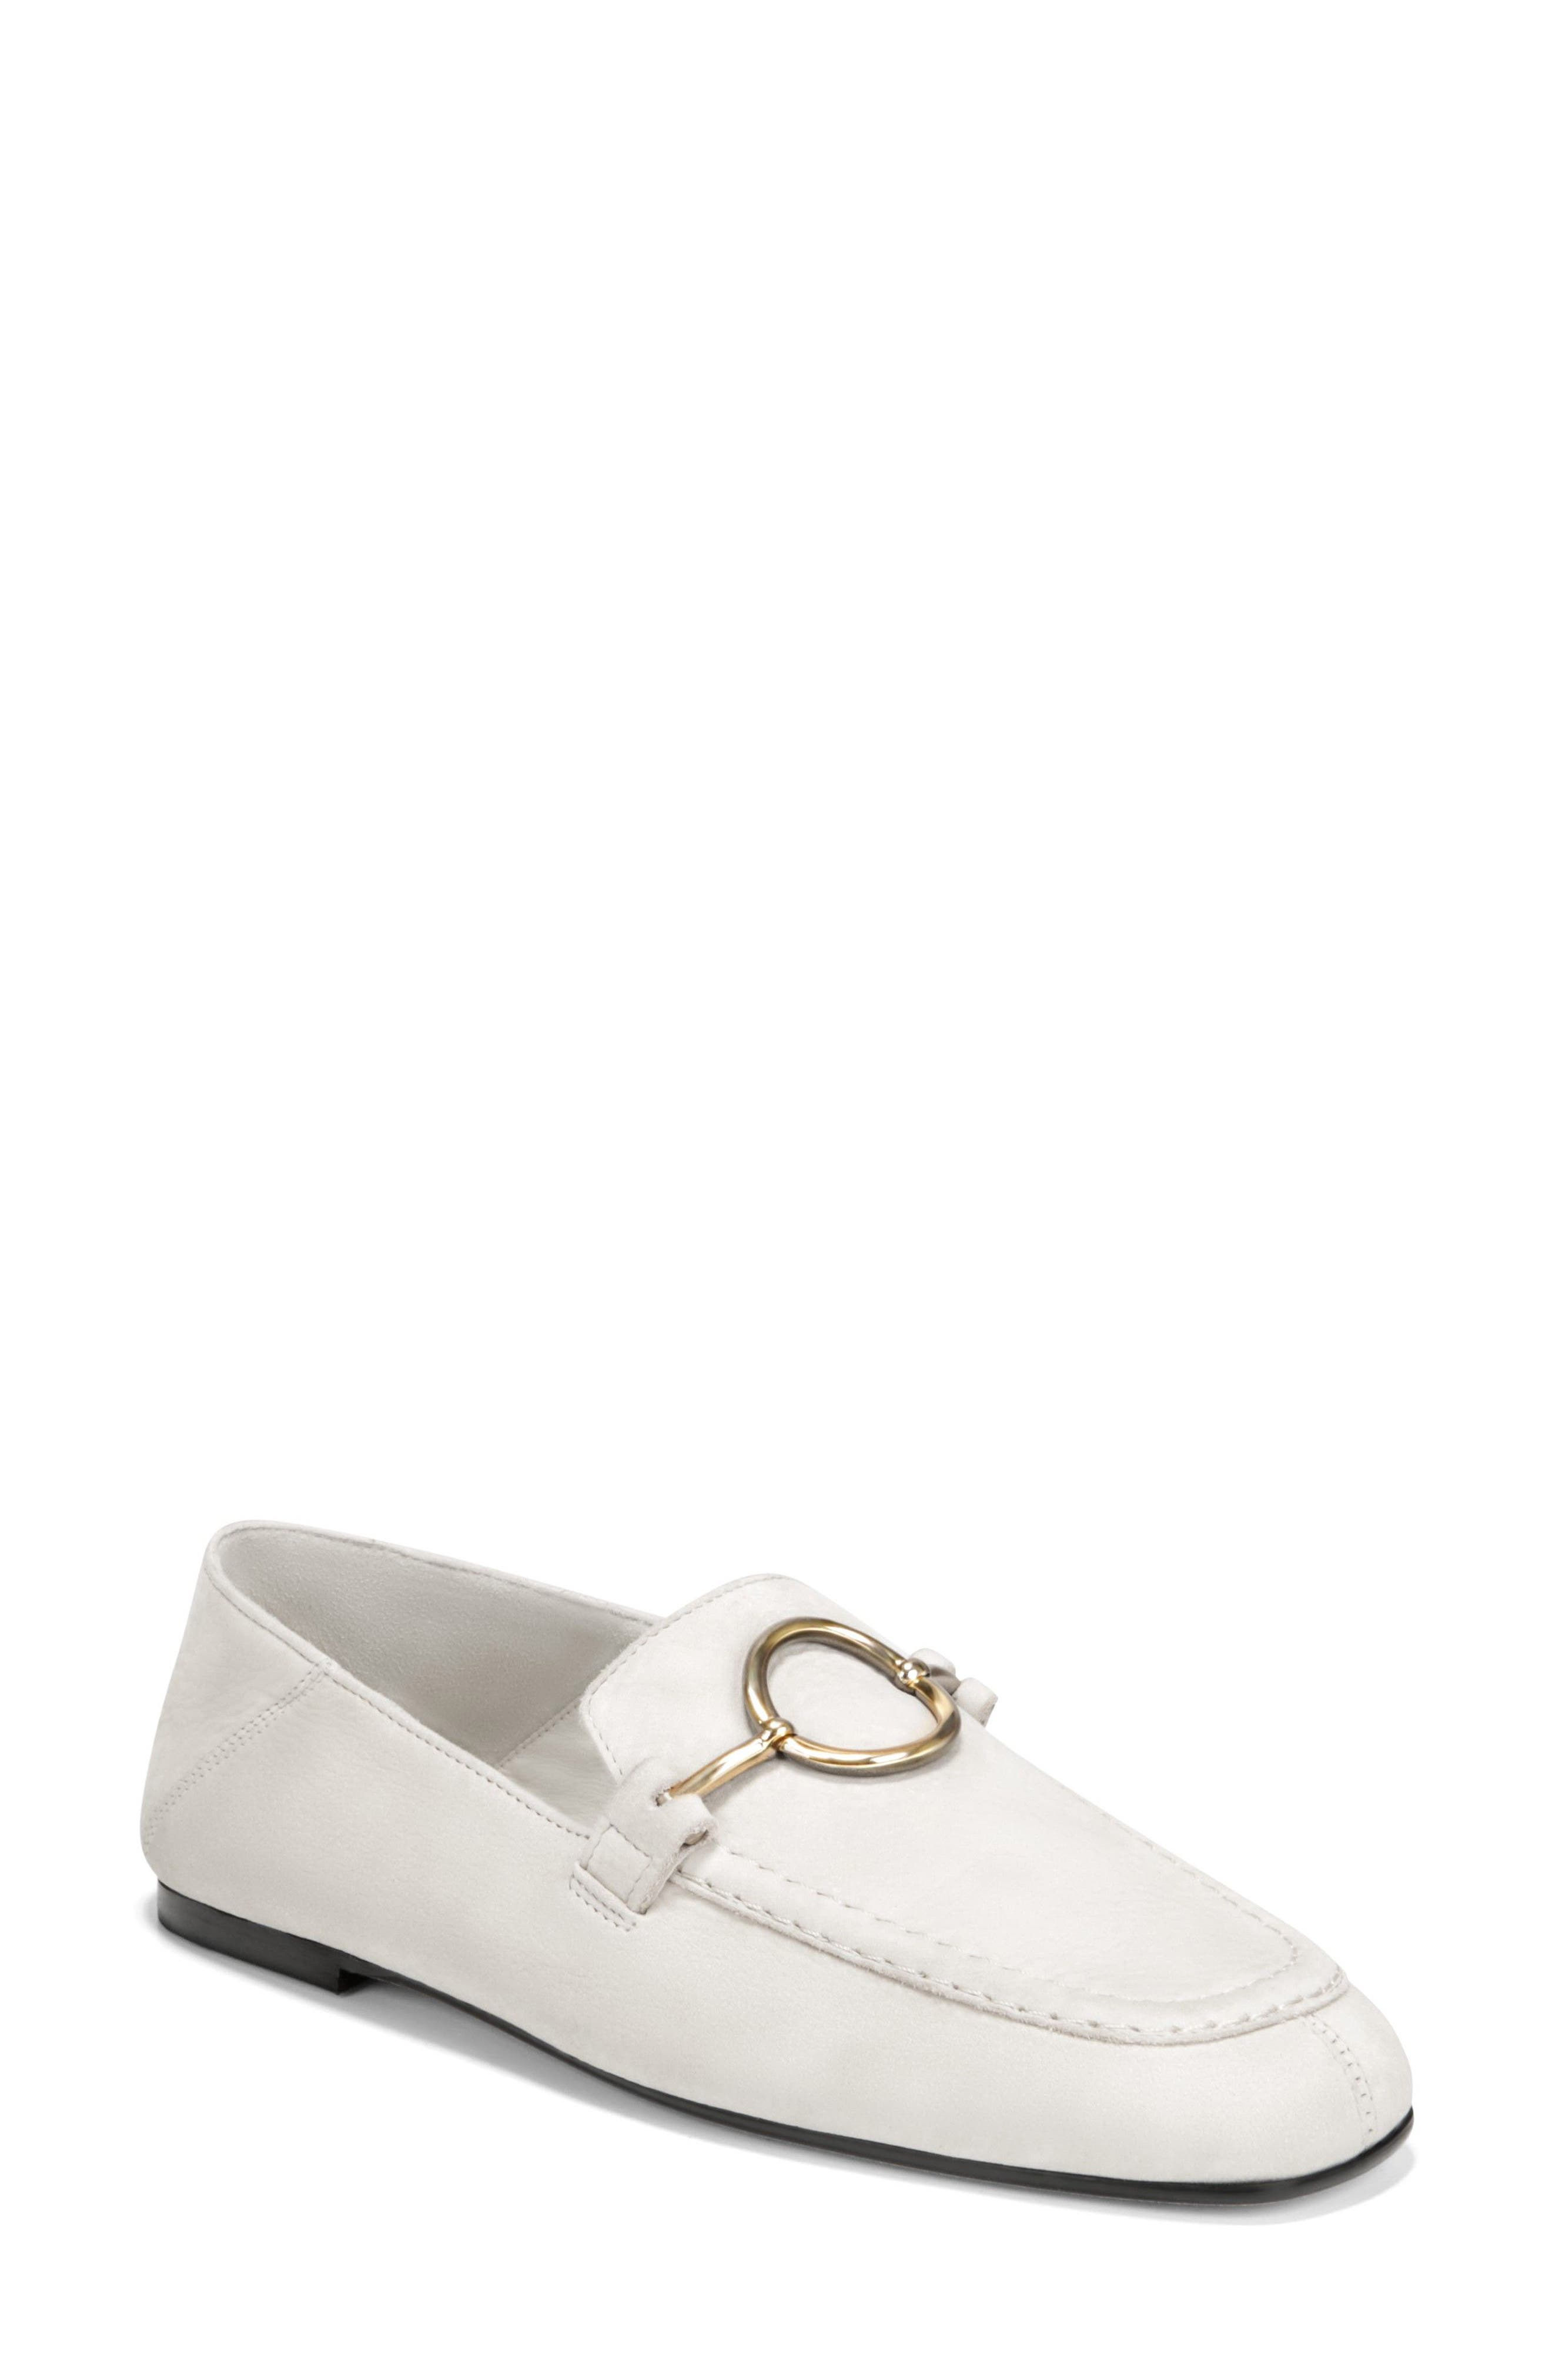 Abby Loafer,                         Main,                         color, Porcelain Leather